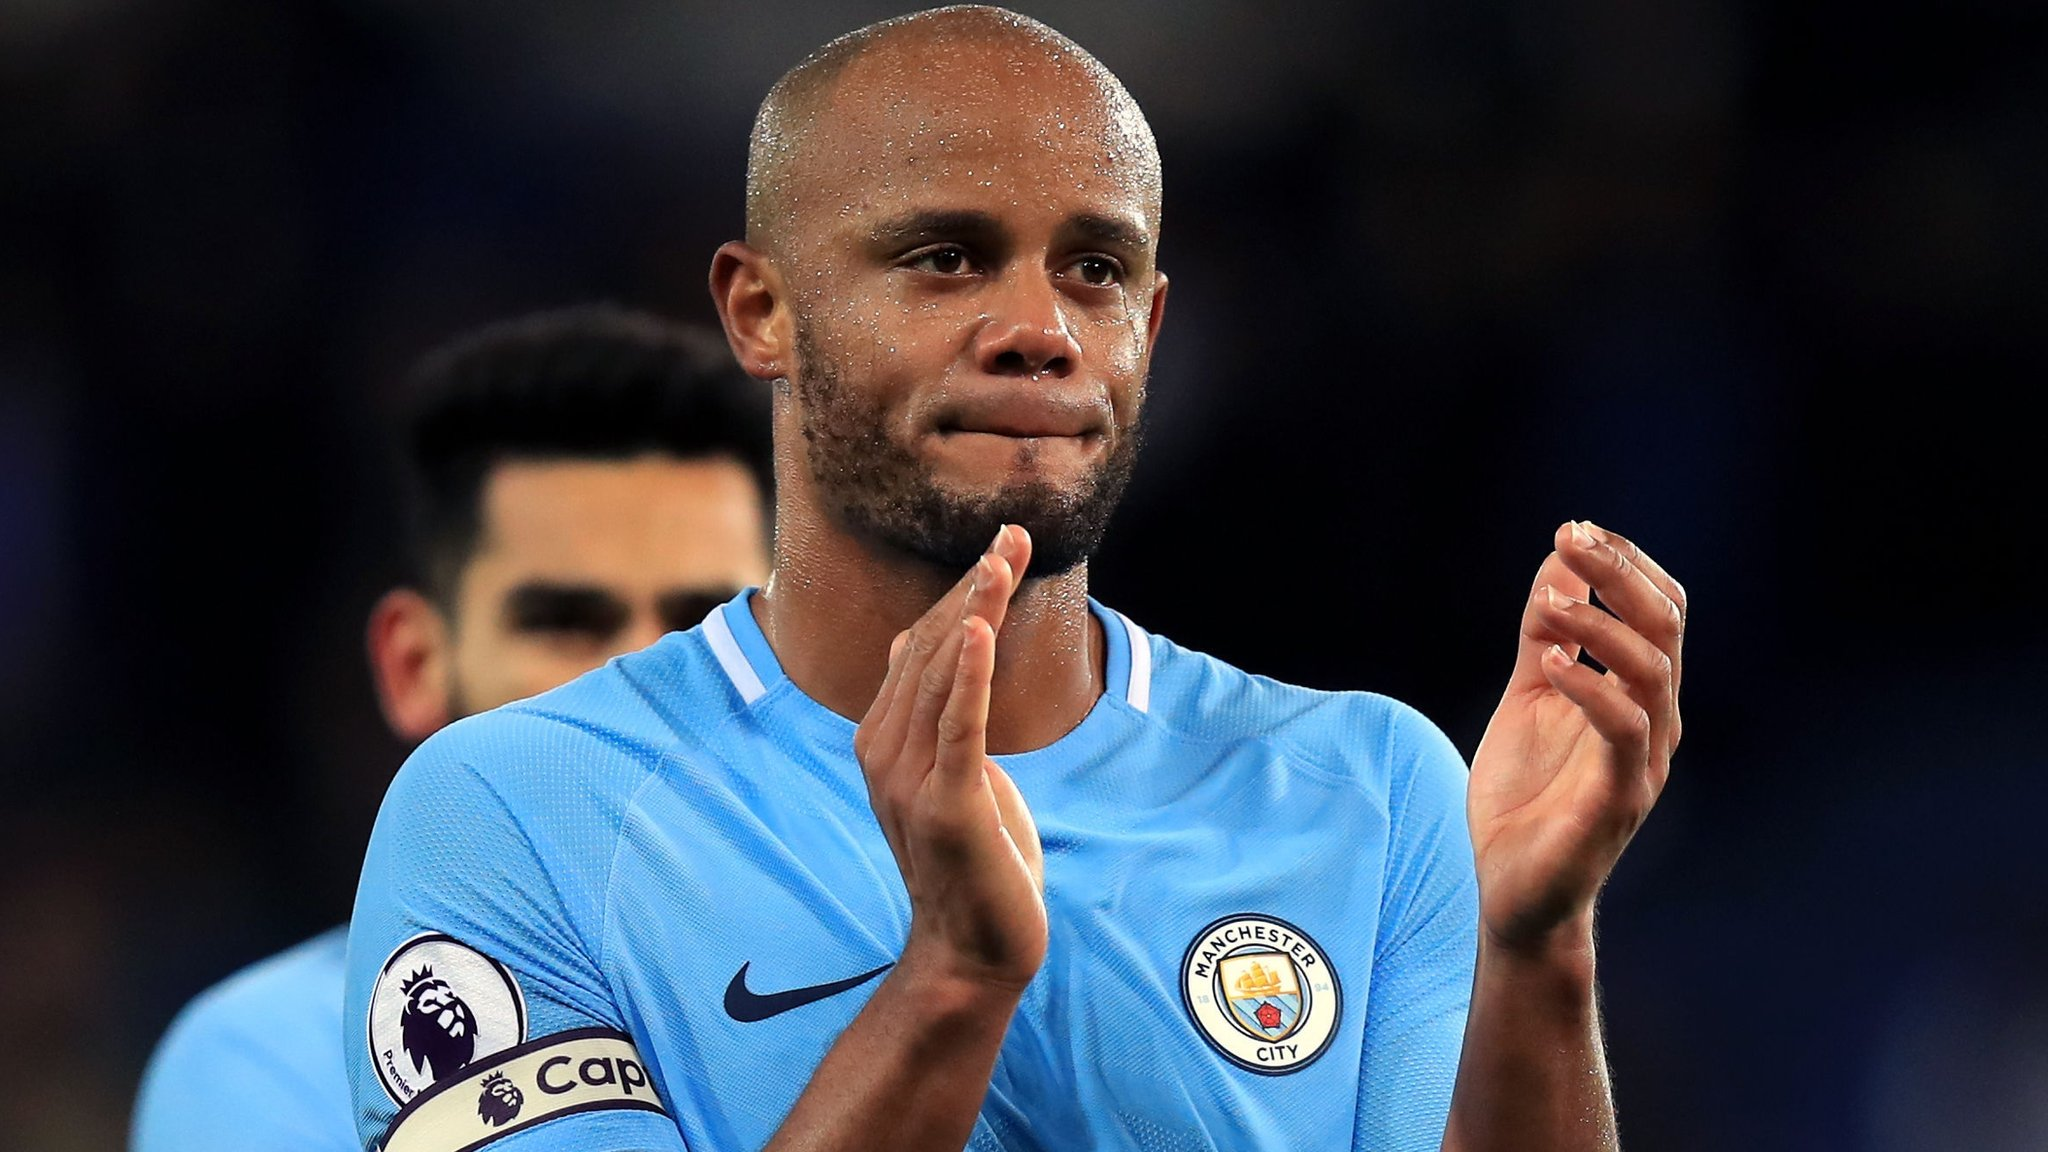 Manchester City v Feyenoord: Vincent Kompany 'a risk' for Champions League